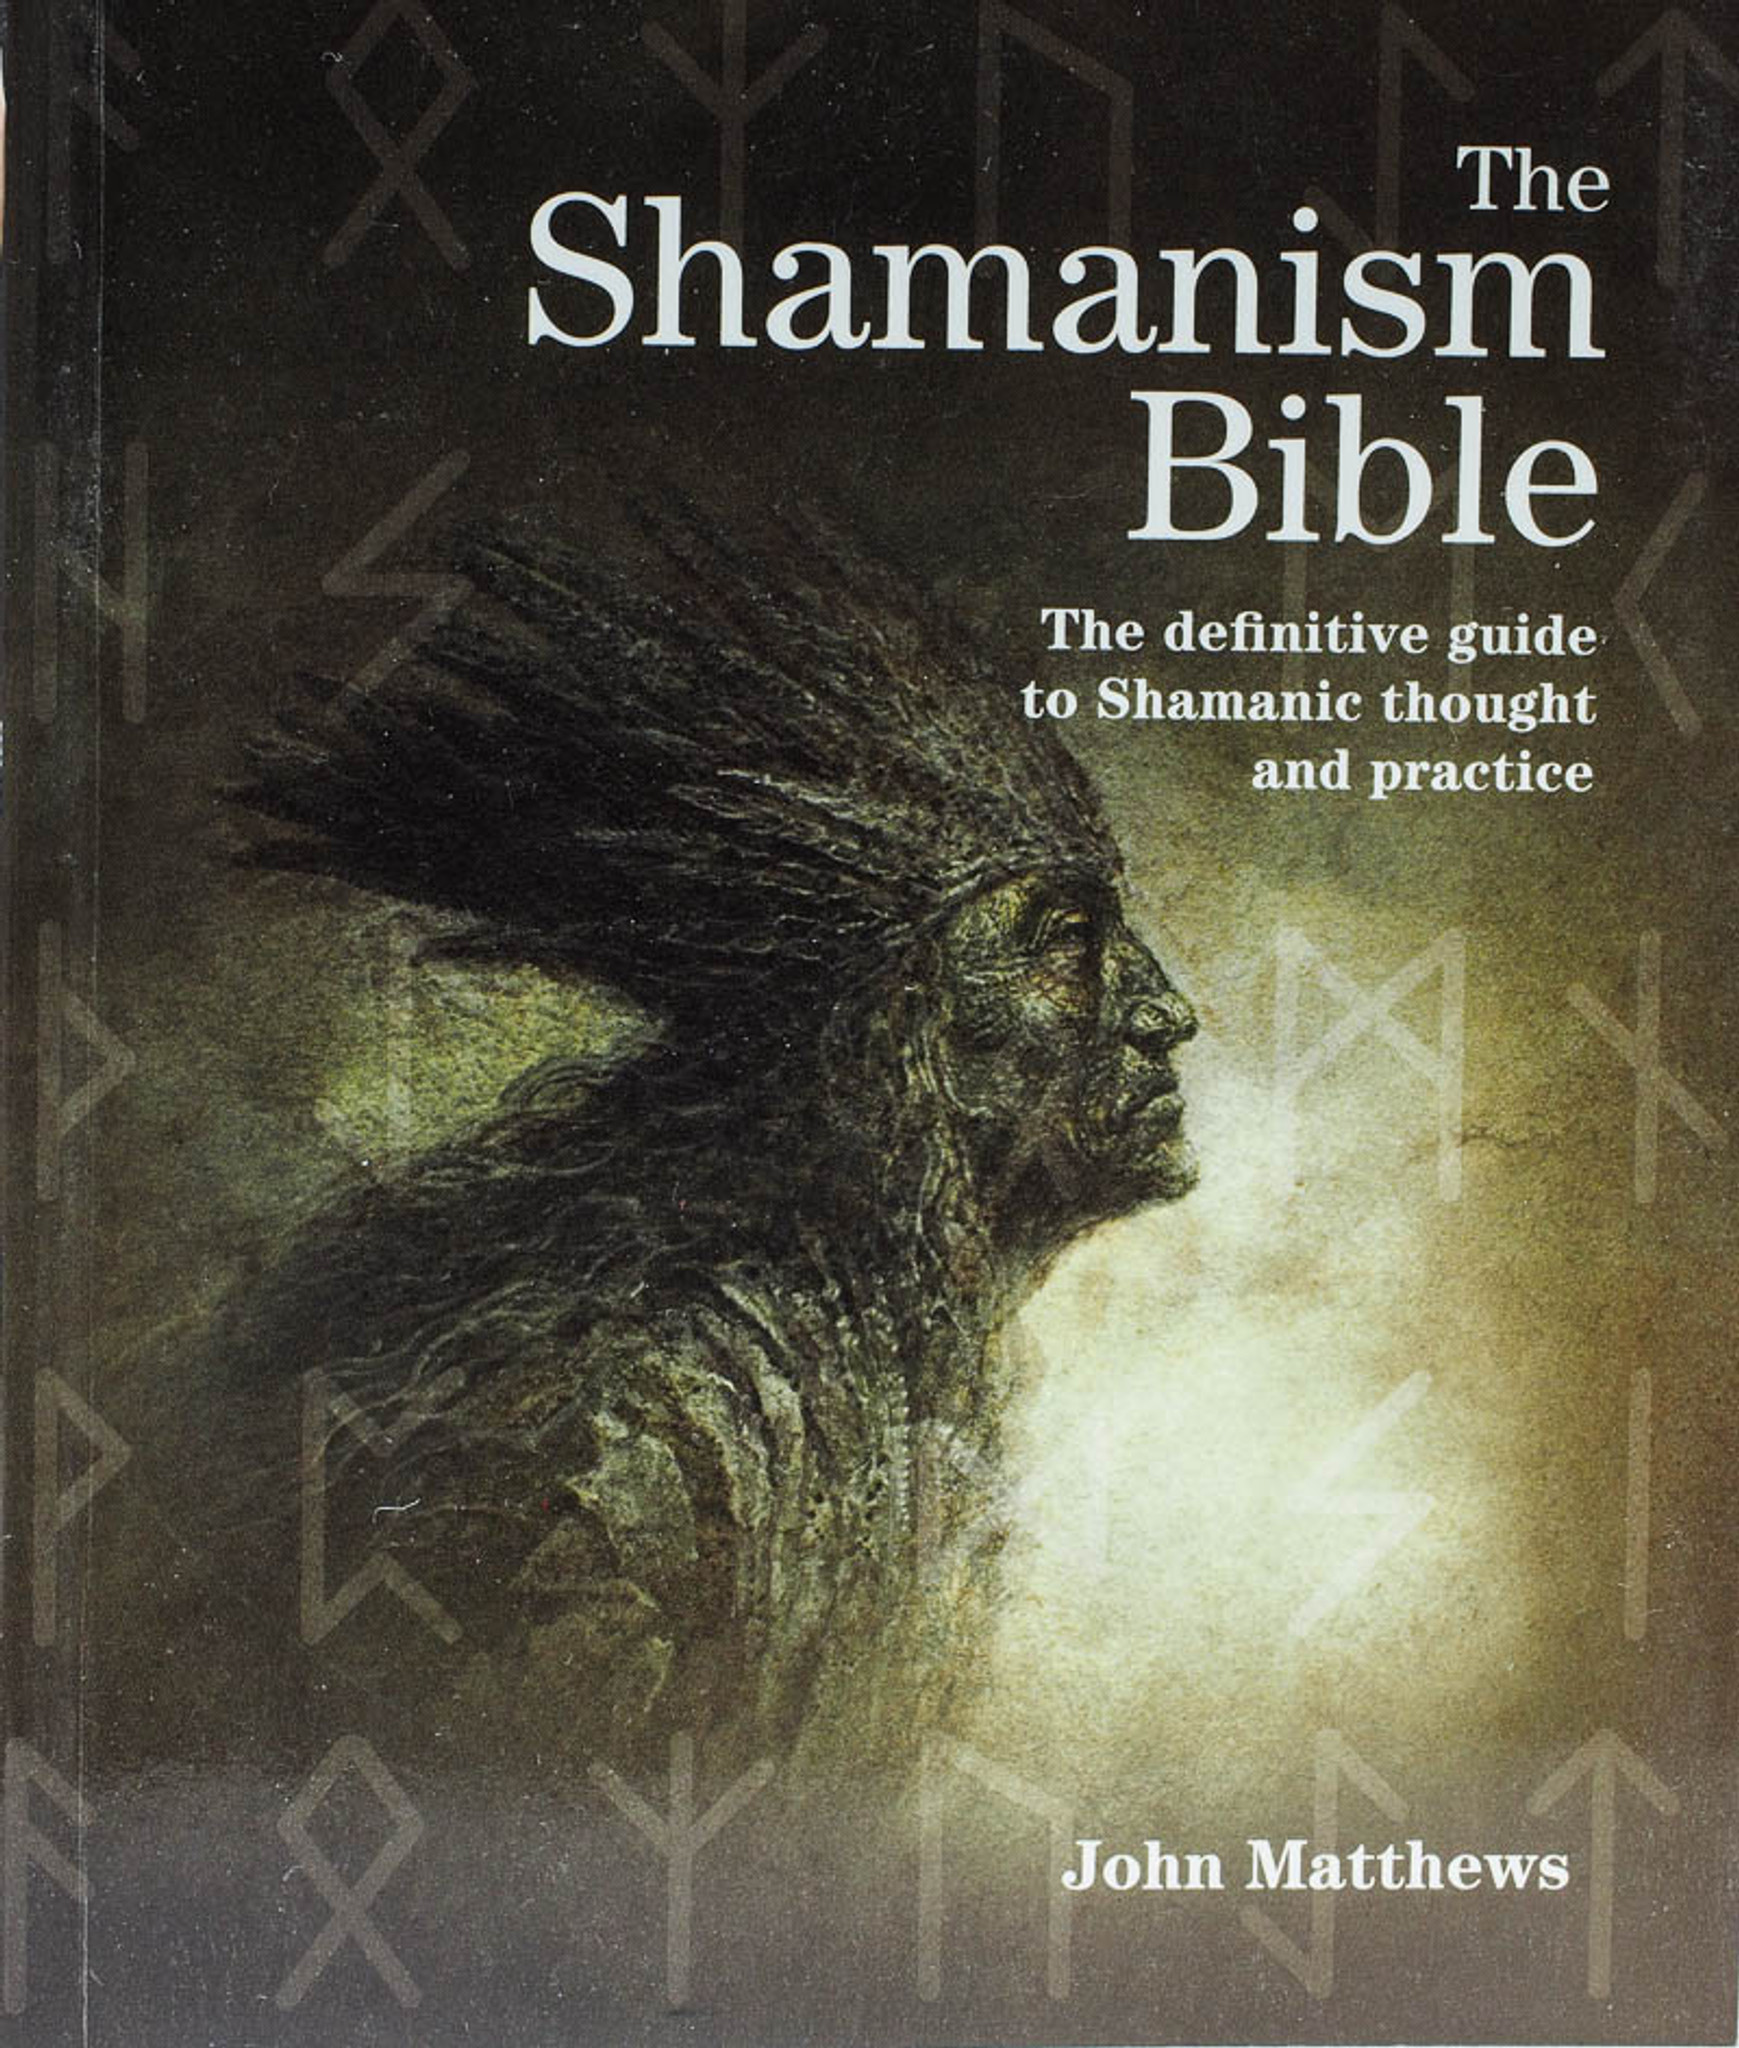 The Shamanism Bible - the definitive guide to Shamanic thought and practice